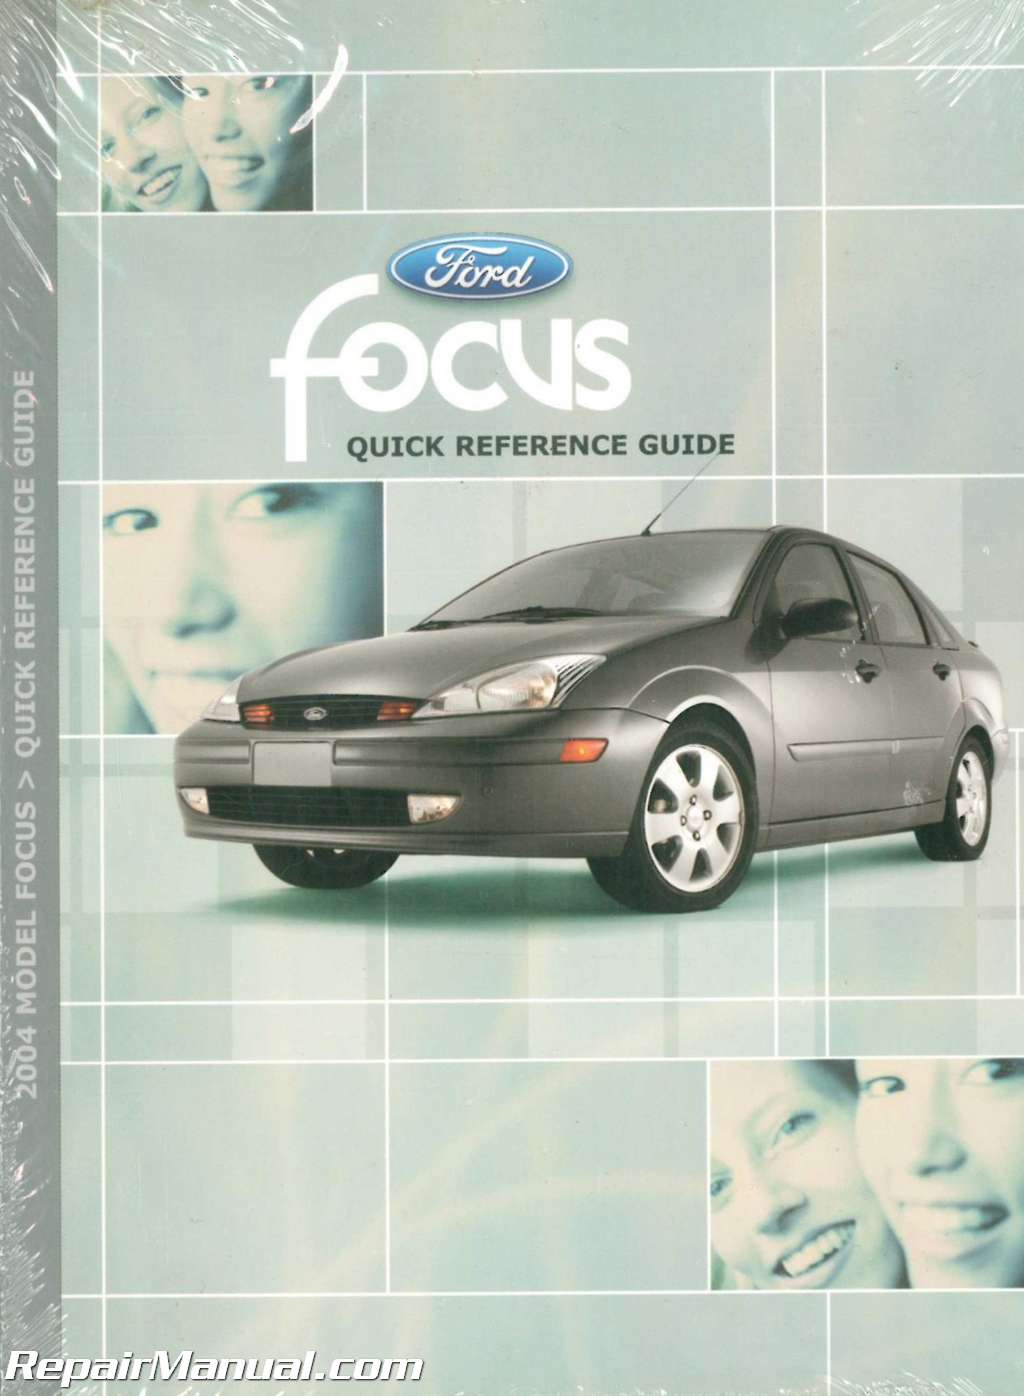 2004 ford focus owners manual rh repairmanual com 2004 ford focus owners manual download 2004 ford focus zts owners manual